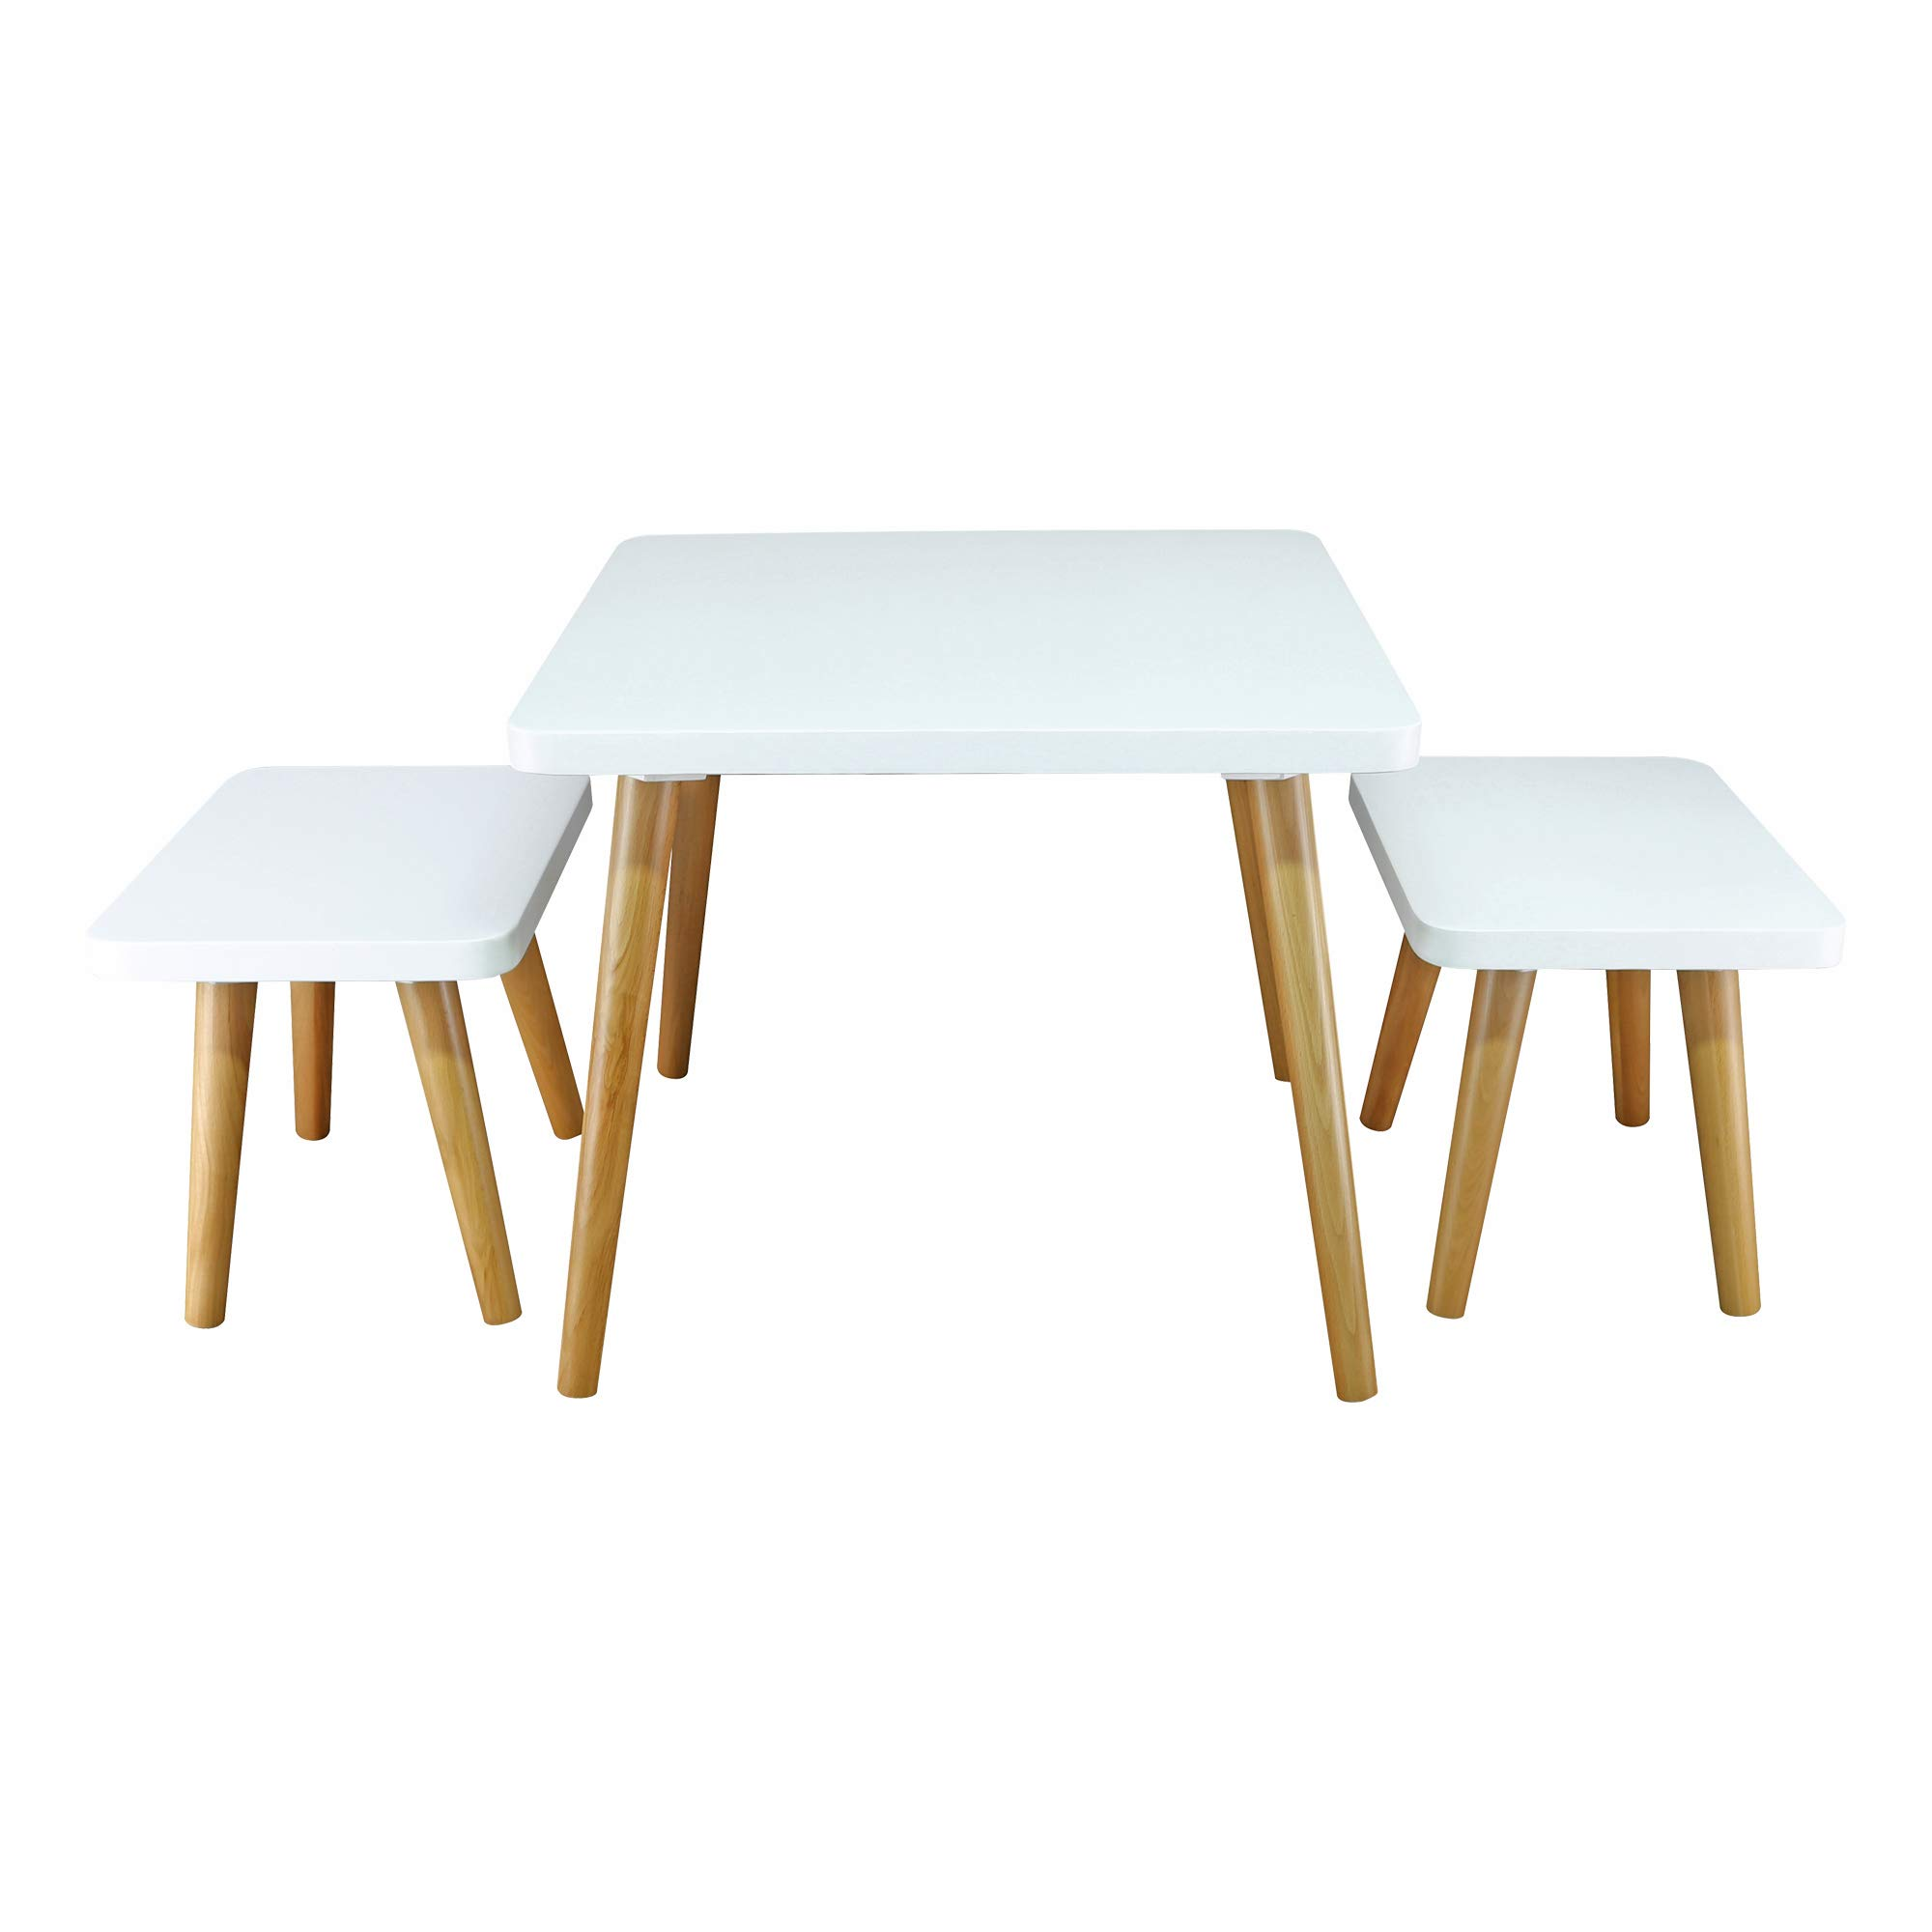 American Trails 560-31 The Easel Table & Chair Set Kid Table, Two-Tone (White, Natural) by American Trails (Image #1)